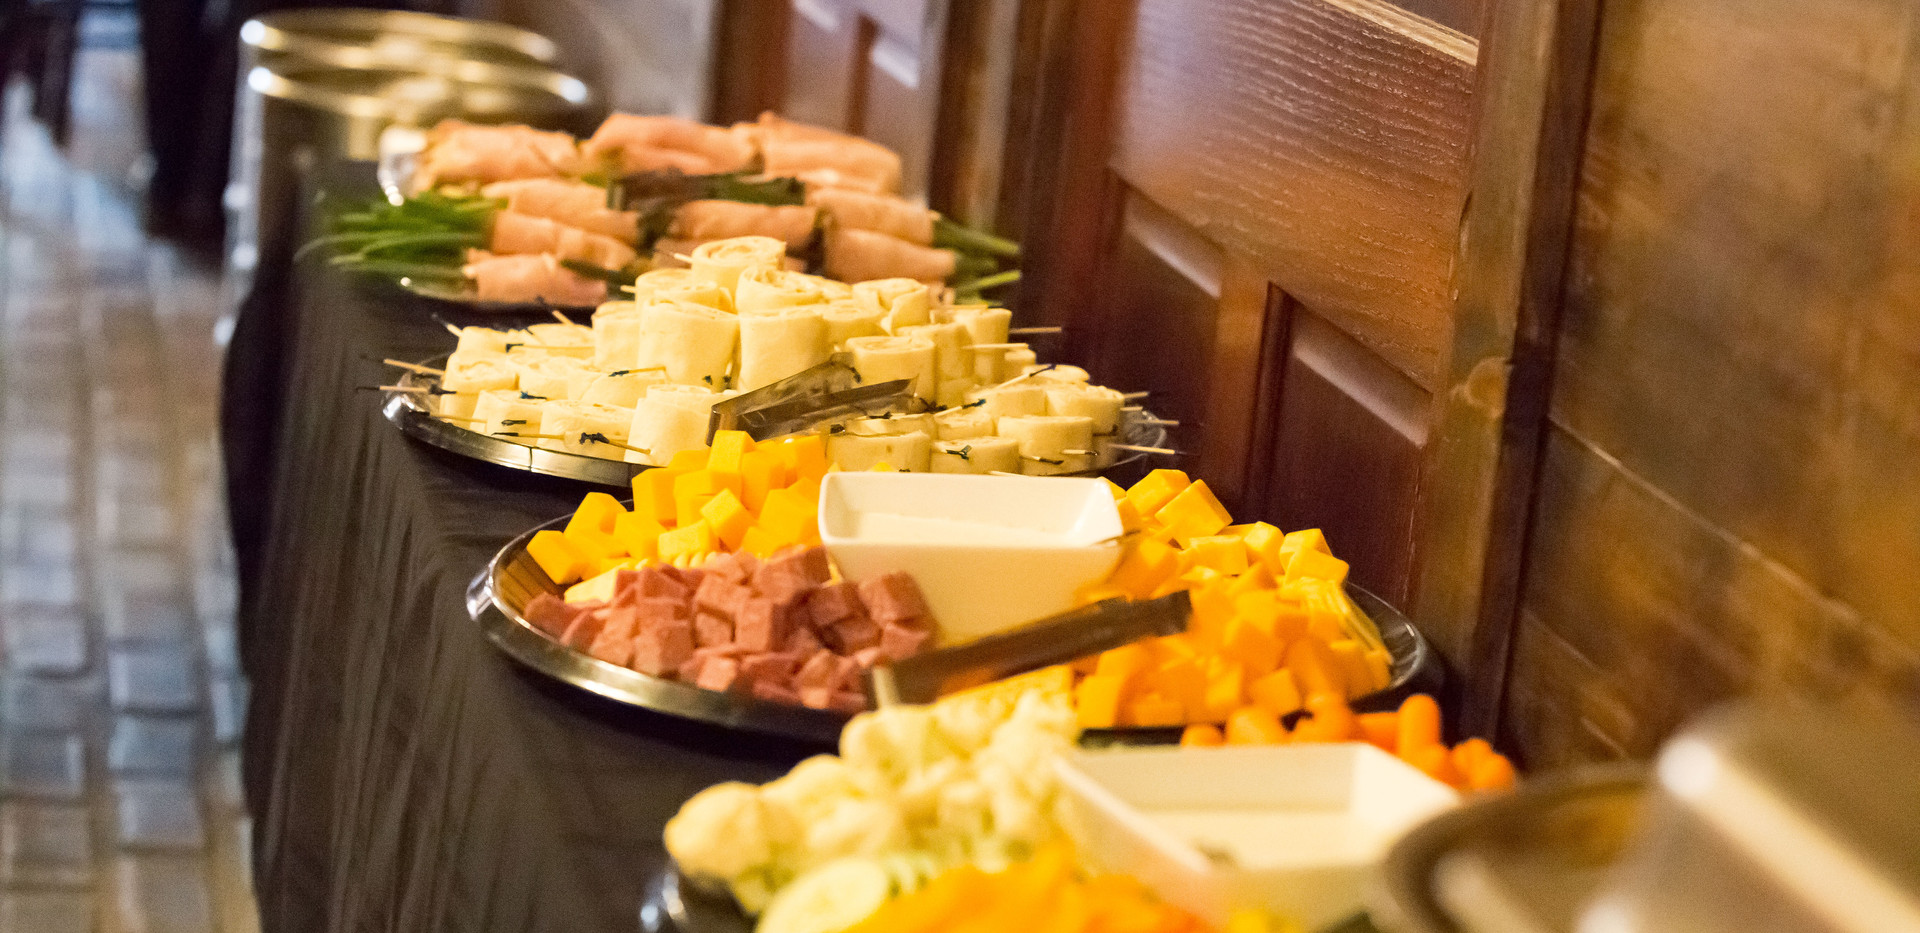 Some of the snacks provided at South Haven Brew Pub.